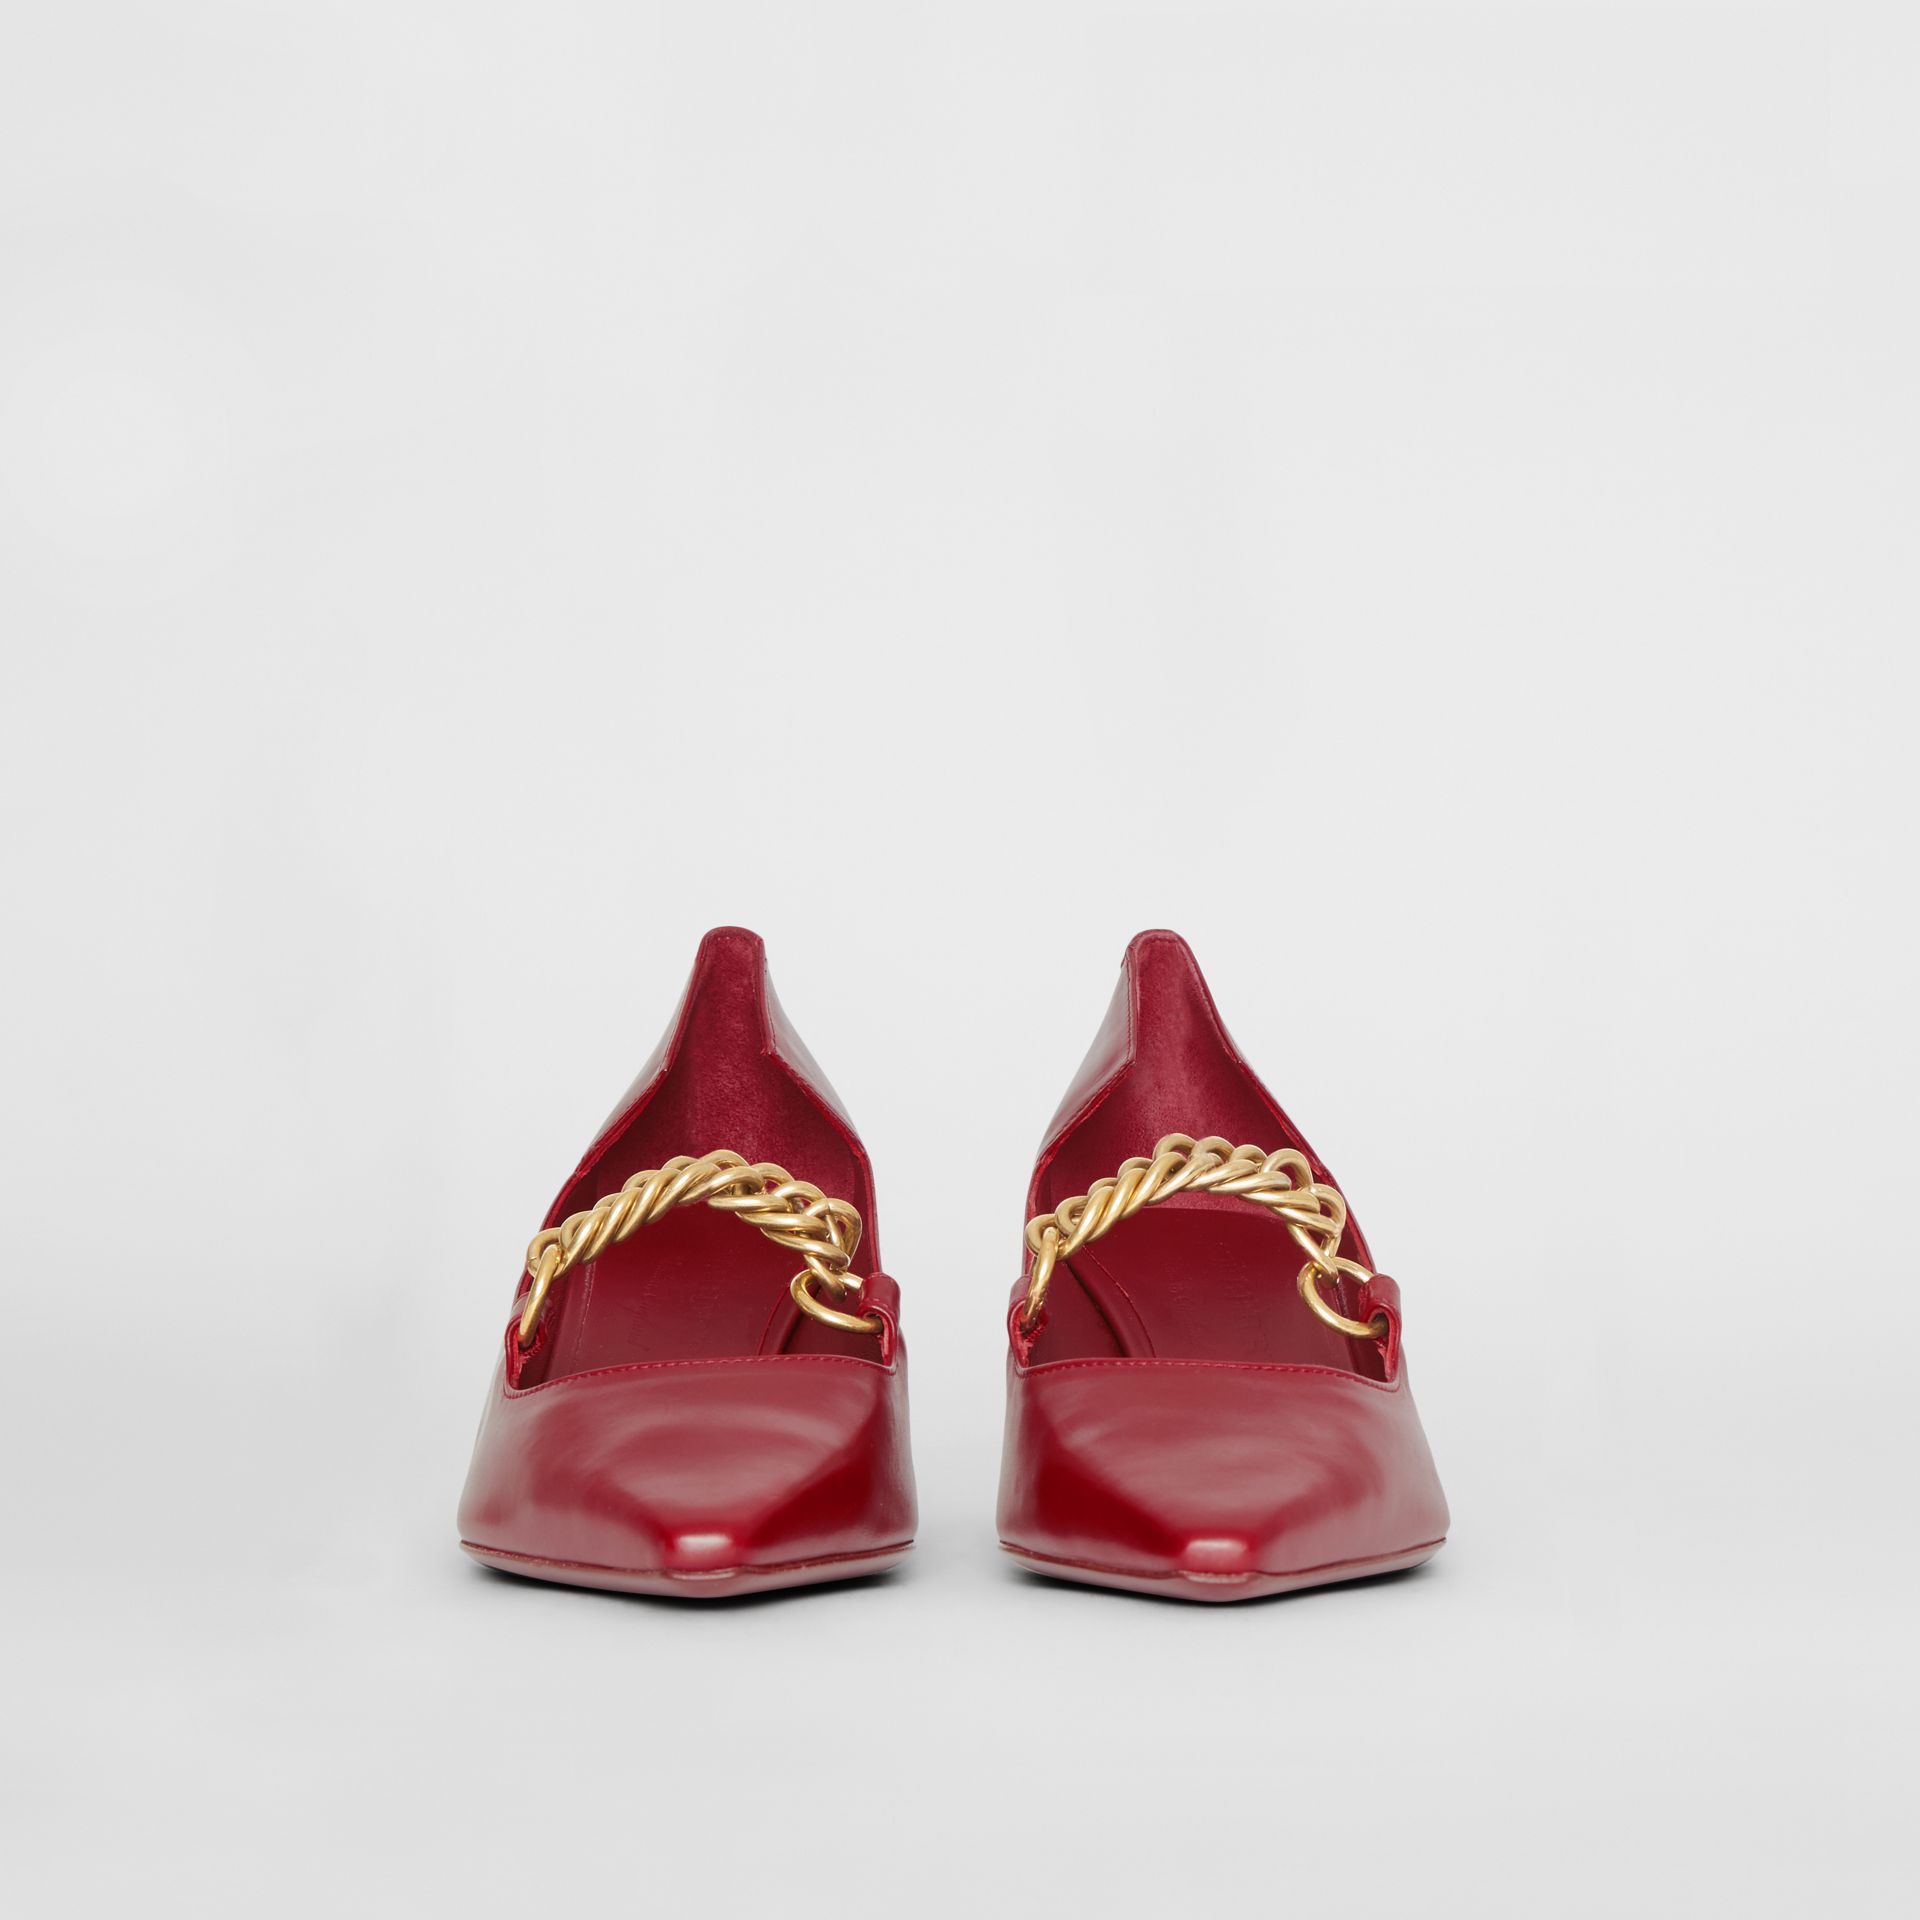 Link Detail Leather Point-toe Pump in Claret - Women | Burberry Hong Kong - gallery image 3